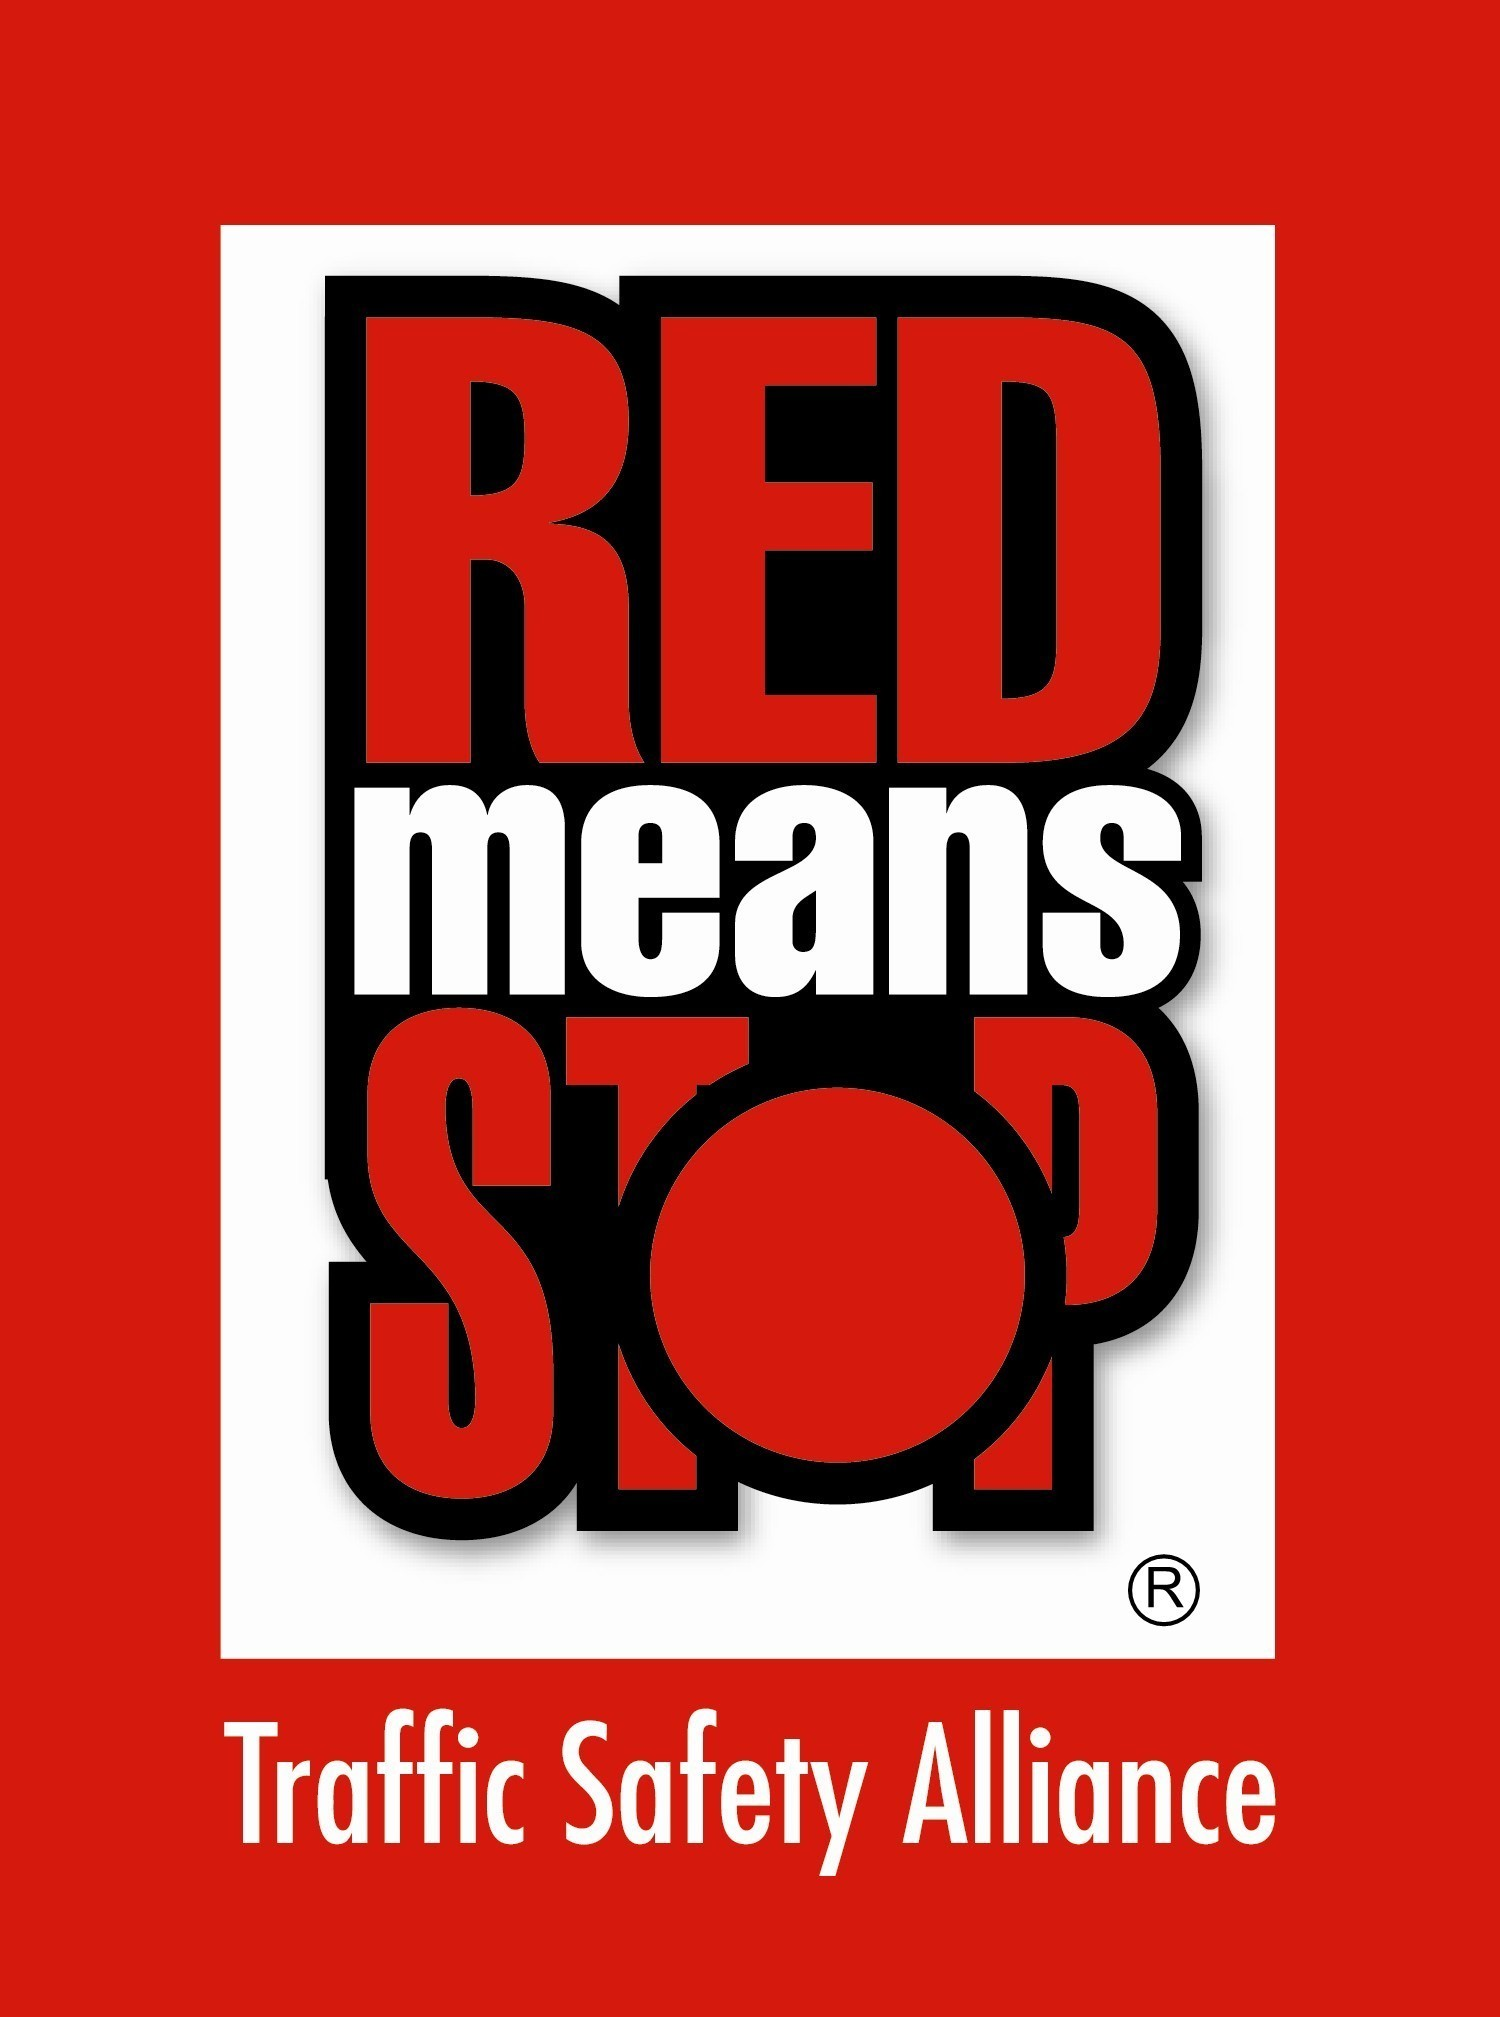 Red Means Stop Traffic Safety Alliance